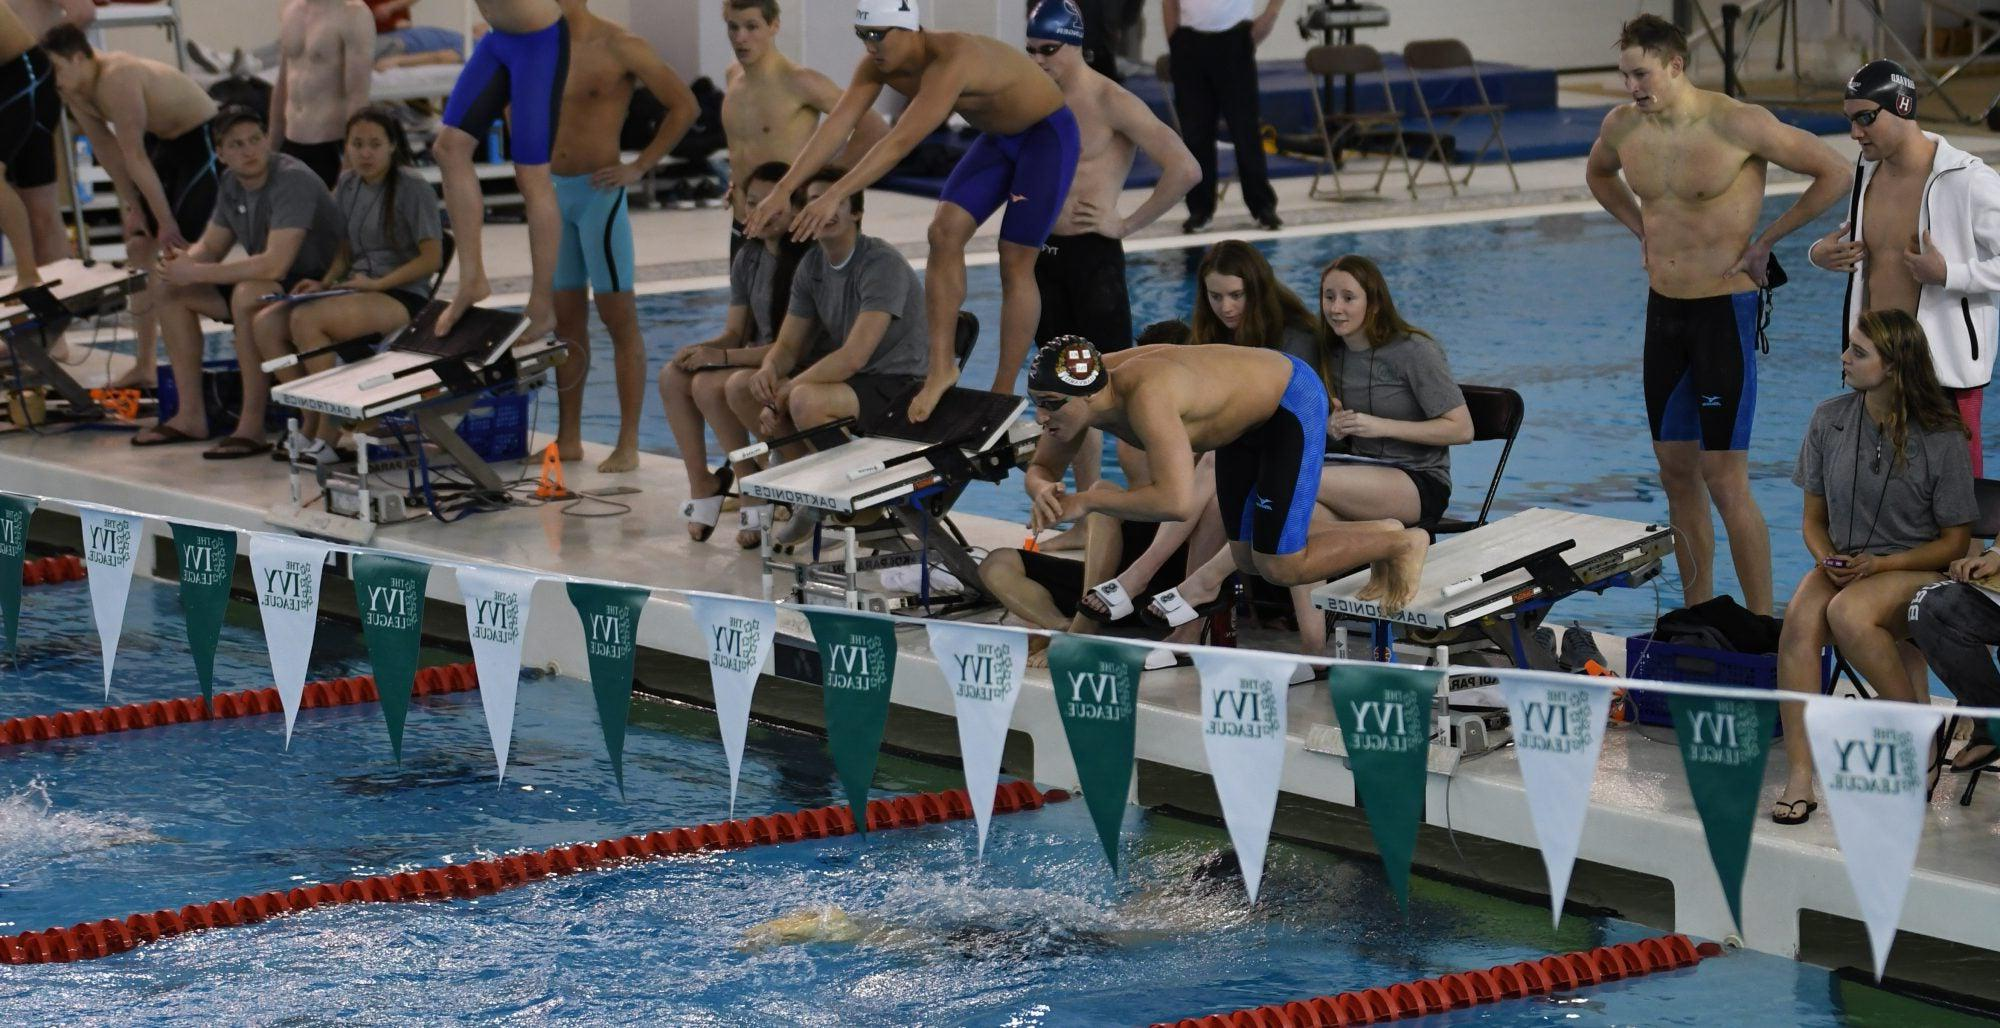 Harvard students poised to jump in a pool